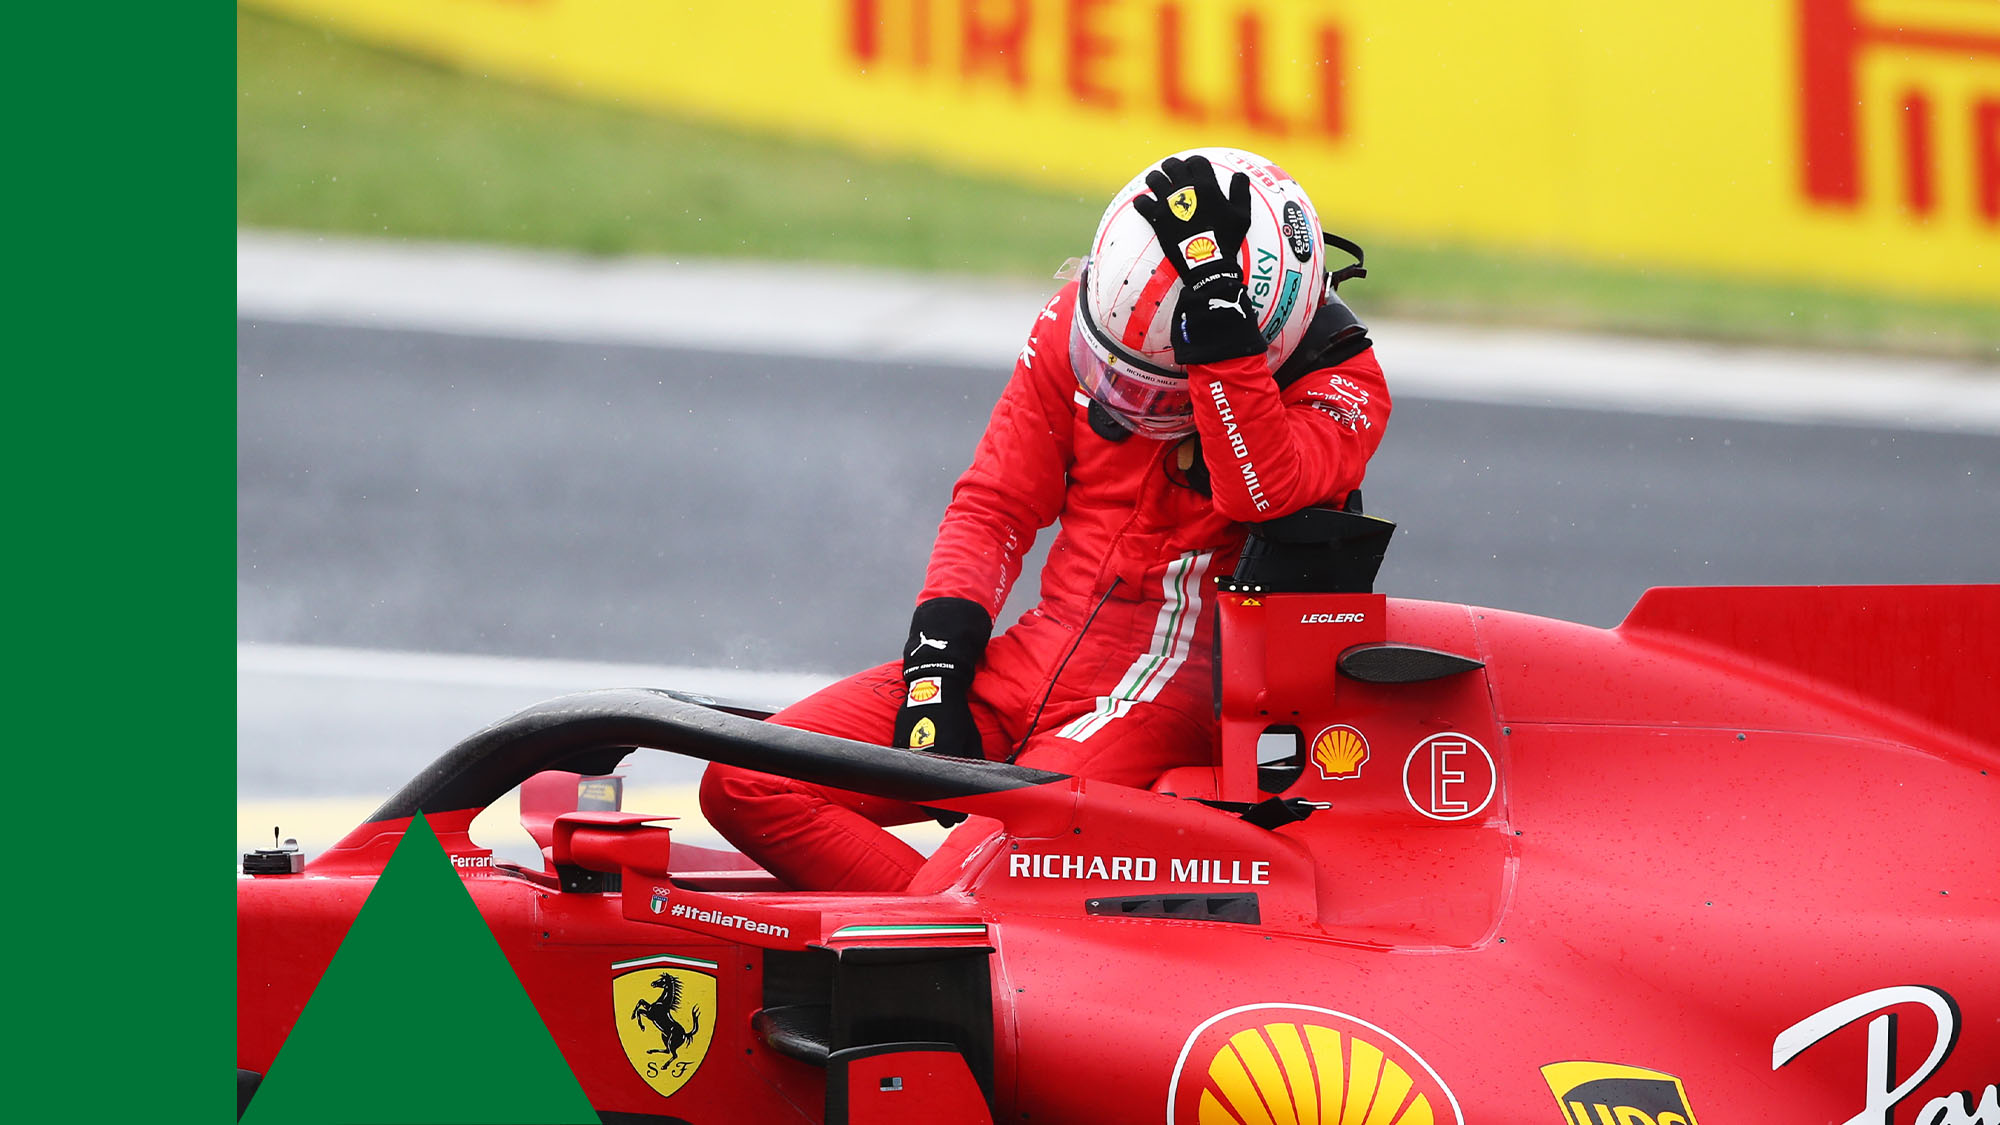 BUDAPEST, HUNGARY - AUGUST 01: Charles Leclerc of Monaco and Ferrari retires from the race during the F1 Grand Prix of Hungary at Hungaroring on August 01, 2021 in Budapest, Hungary. (Photo by Joe Portlock - Formula 1/Formula 1 via Getty Images)